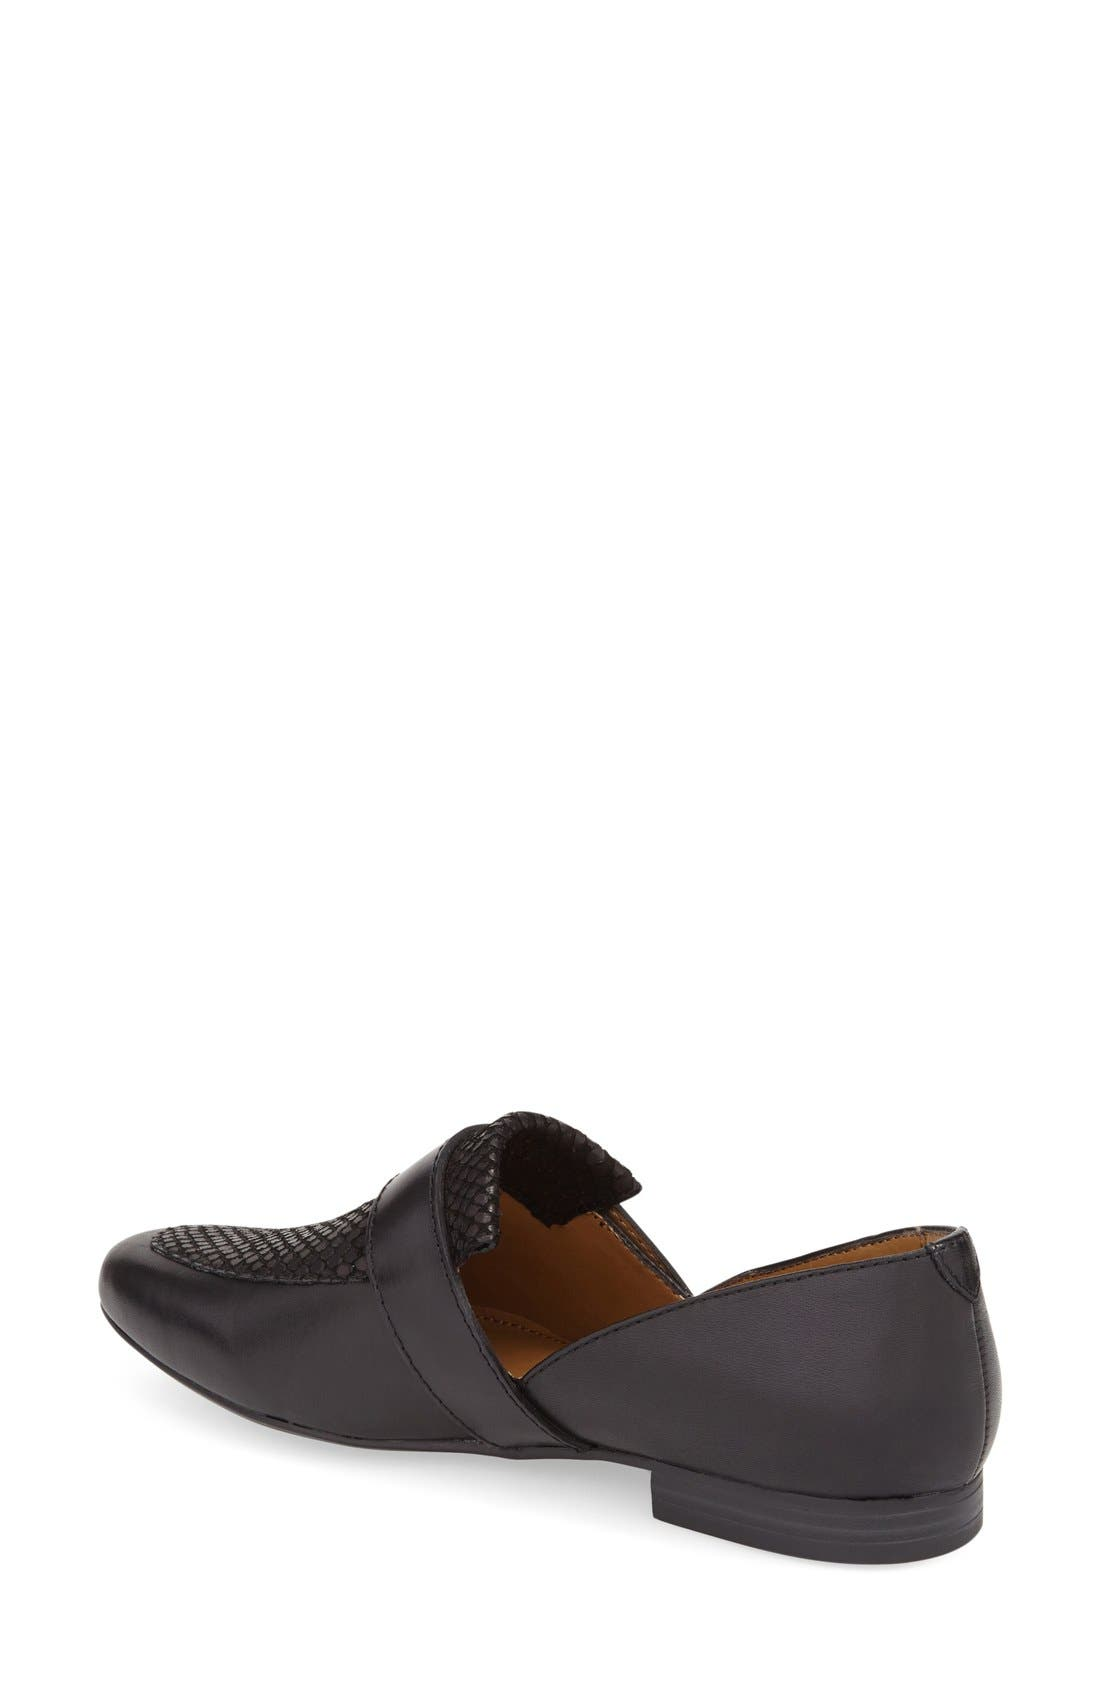 'Hilary' Leather Loafer,                             Alternate thumbnail 2, color,                             BLACK LEATHER